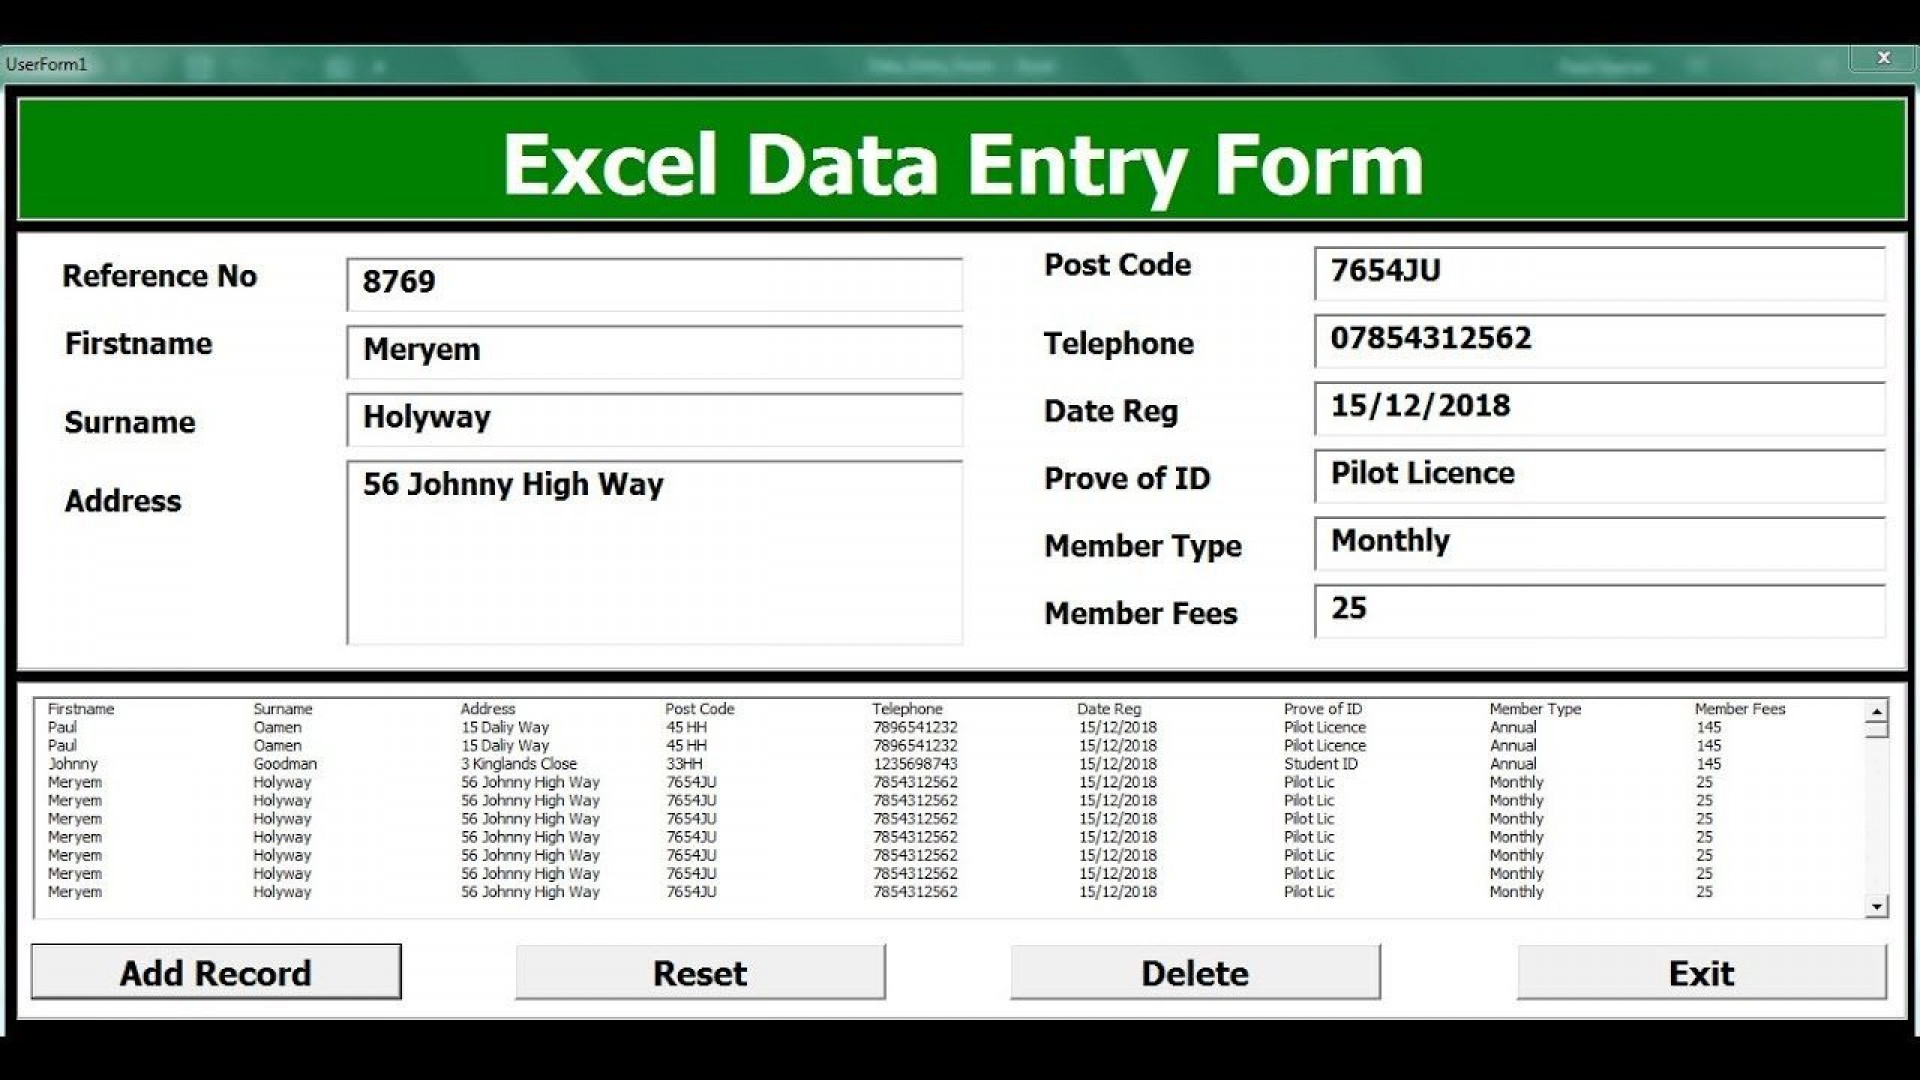 009 Striking Excel Data Entry Form Template Picture  Example Download Free1920